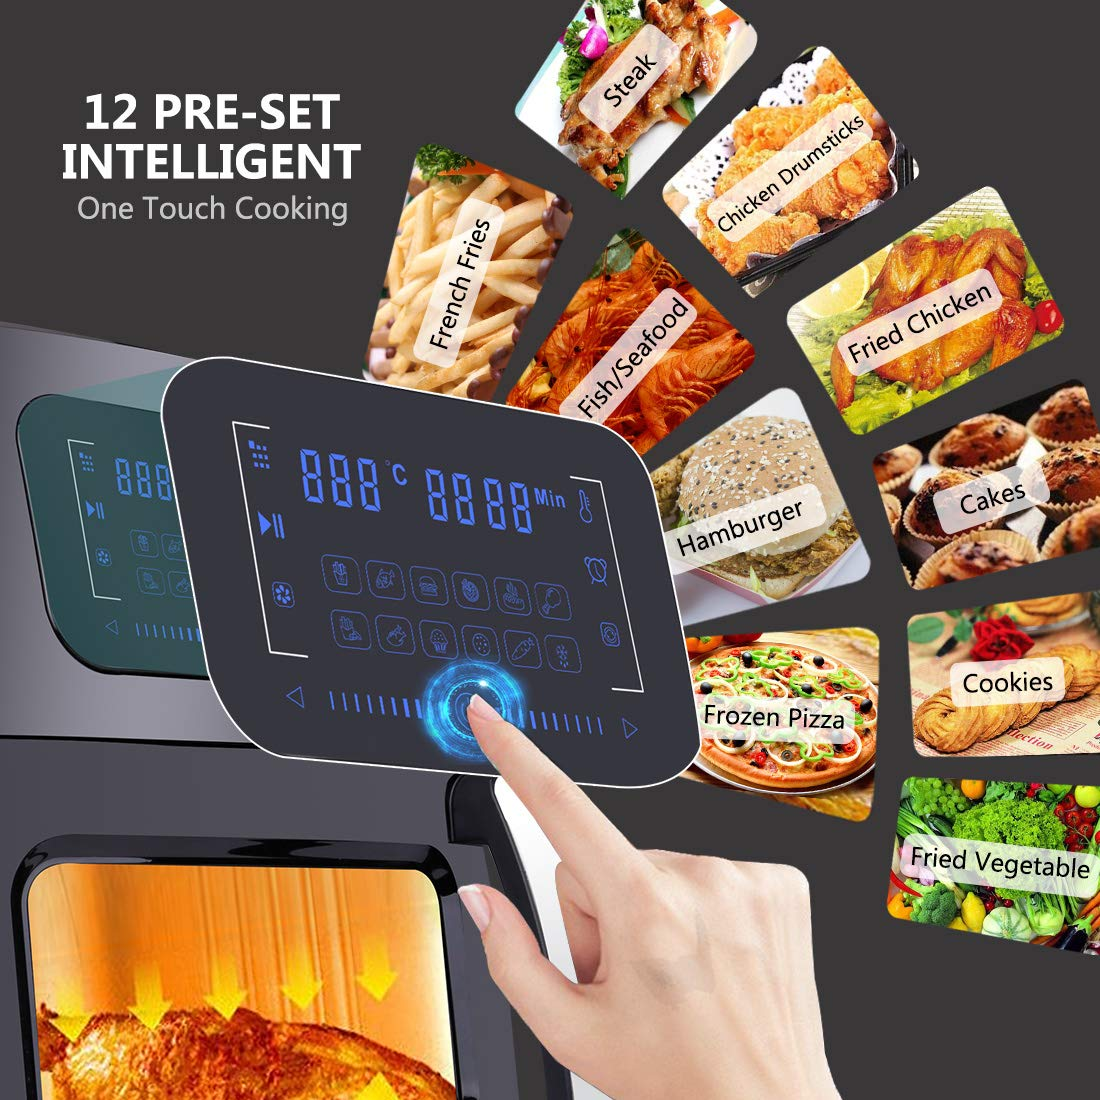 SARKI XL Fryer Viewing Window 12Qt Large Capacity, 6-Piece Programmable Air Oven with 12 Pre Settings Electric Hot Deep 6.3Qt Extra Fry Pan Inside-1700W /110V by SARKI (Image #4)